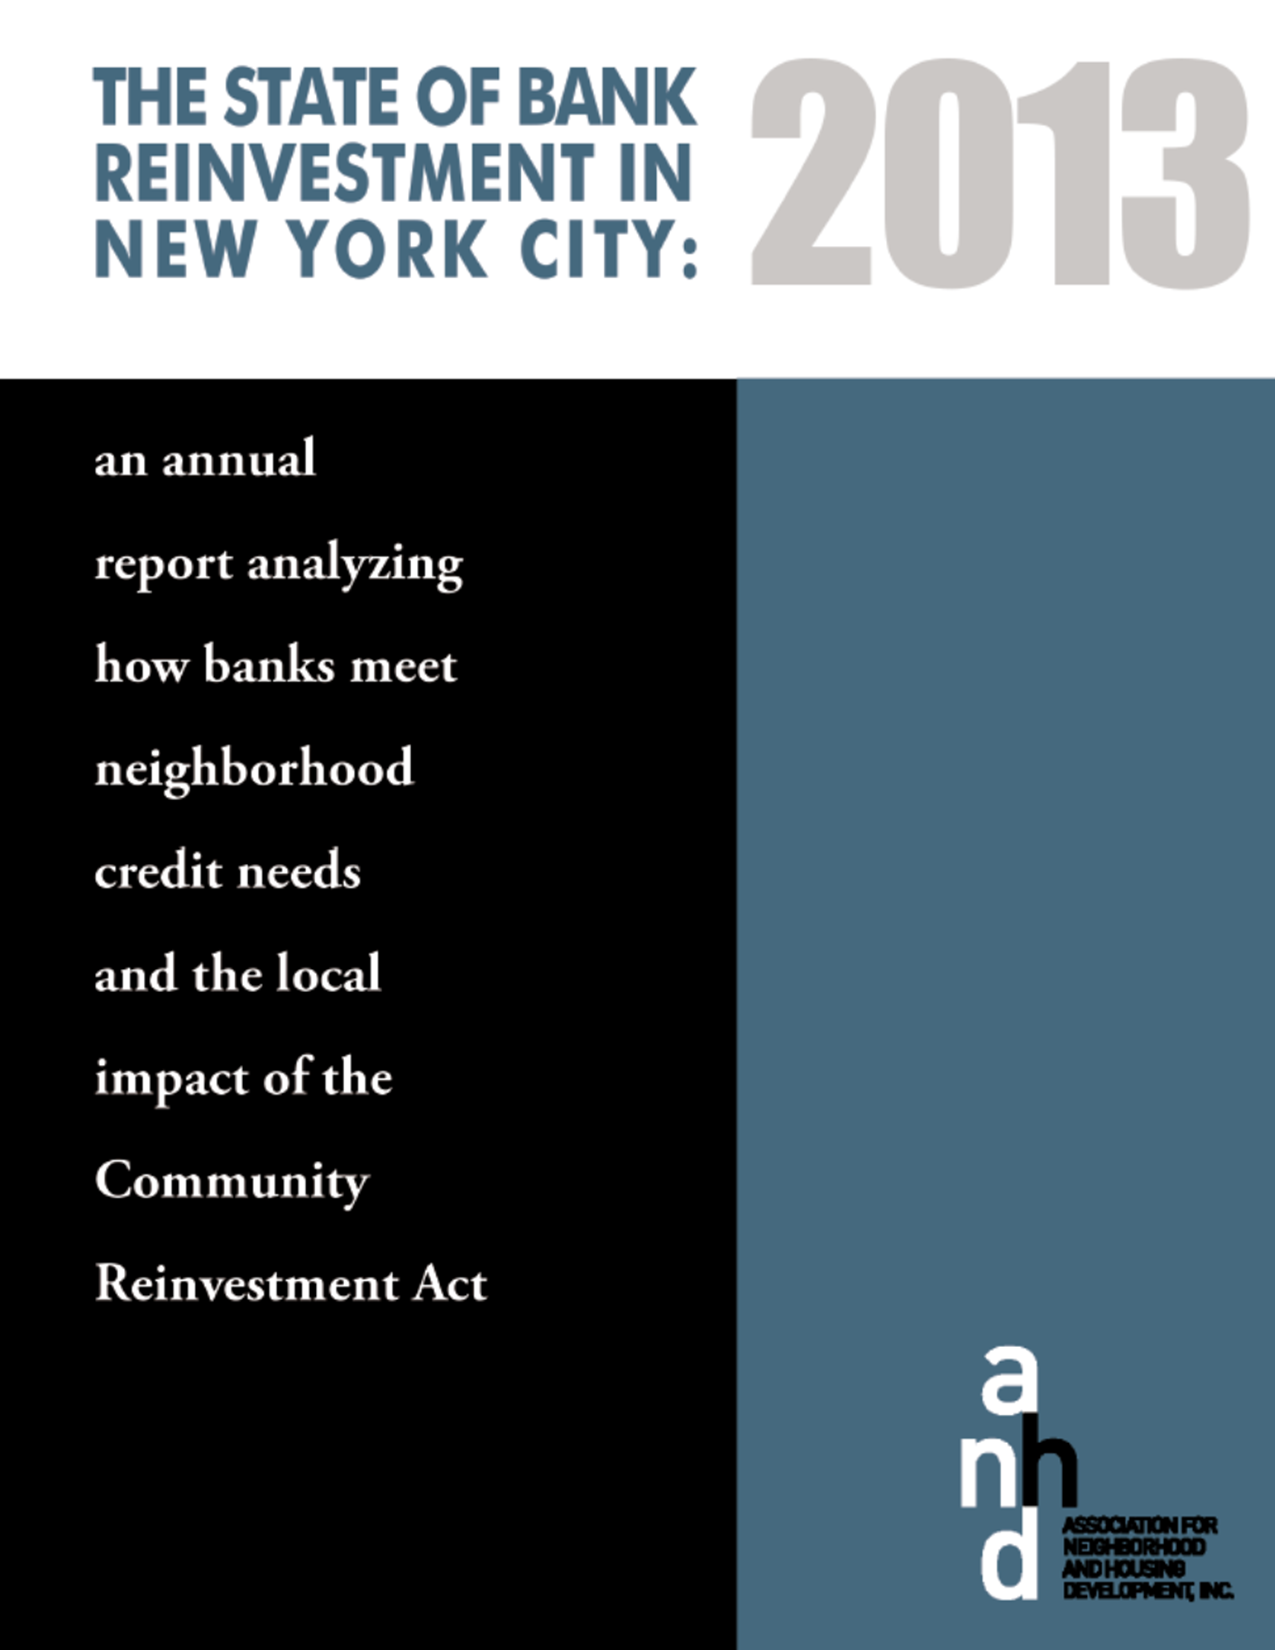 State of Bank Reinvestment in NYC 2009